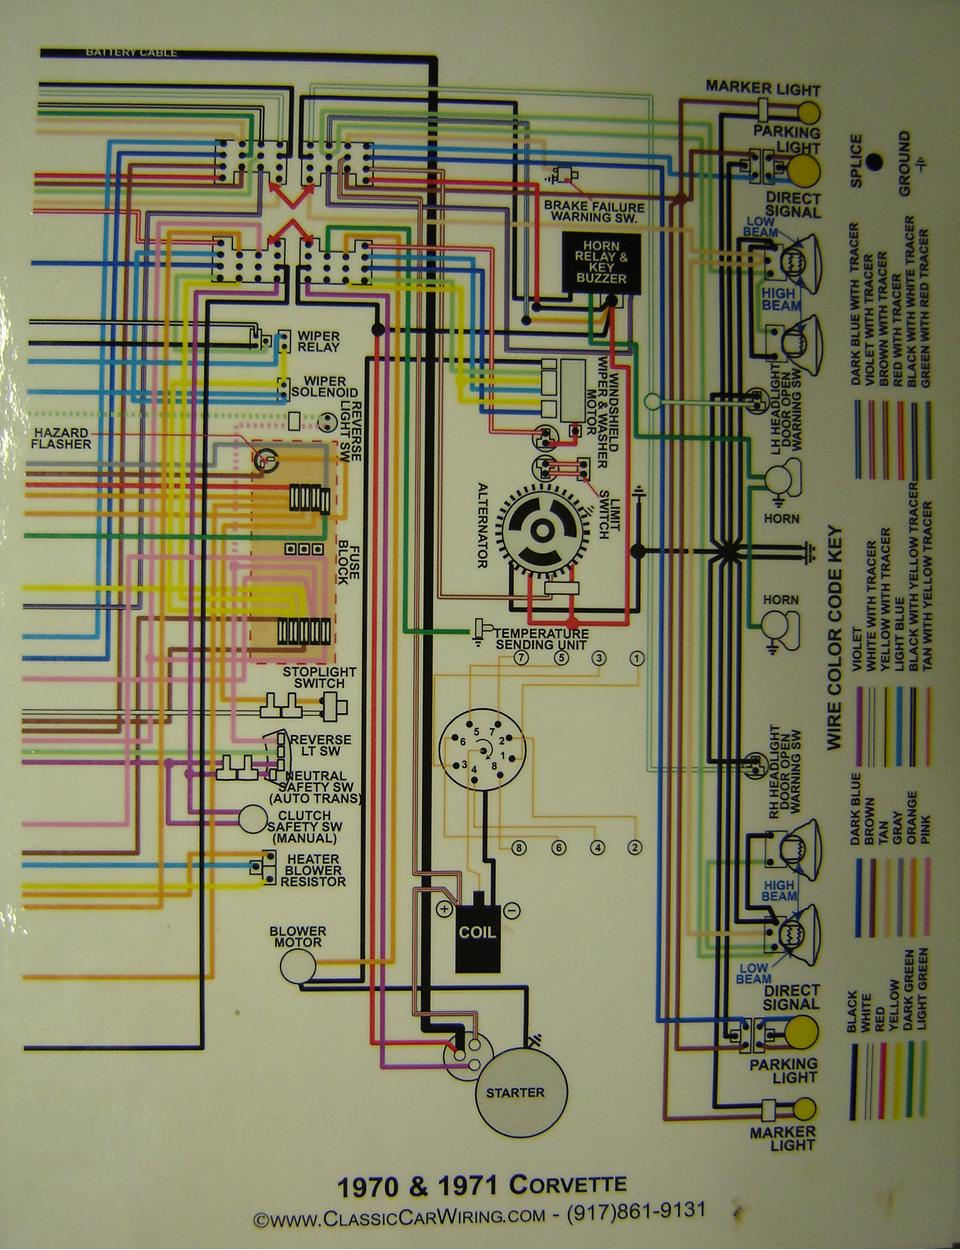 1970 71 corvette color wiring diagram B chevy diagrams 1984 El Camino Wiring-Diagram at panicattacktreatment.co